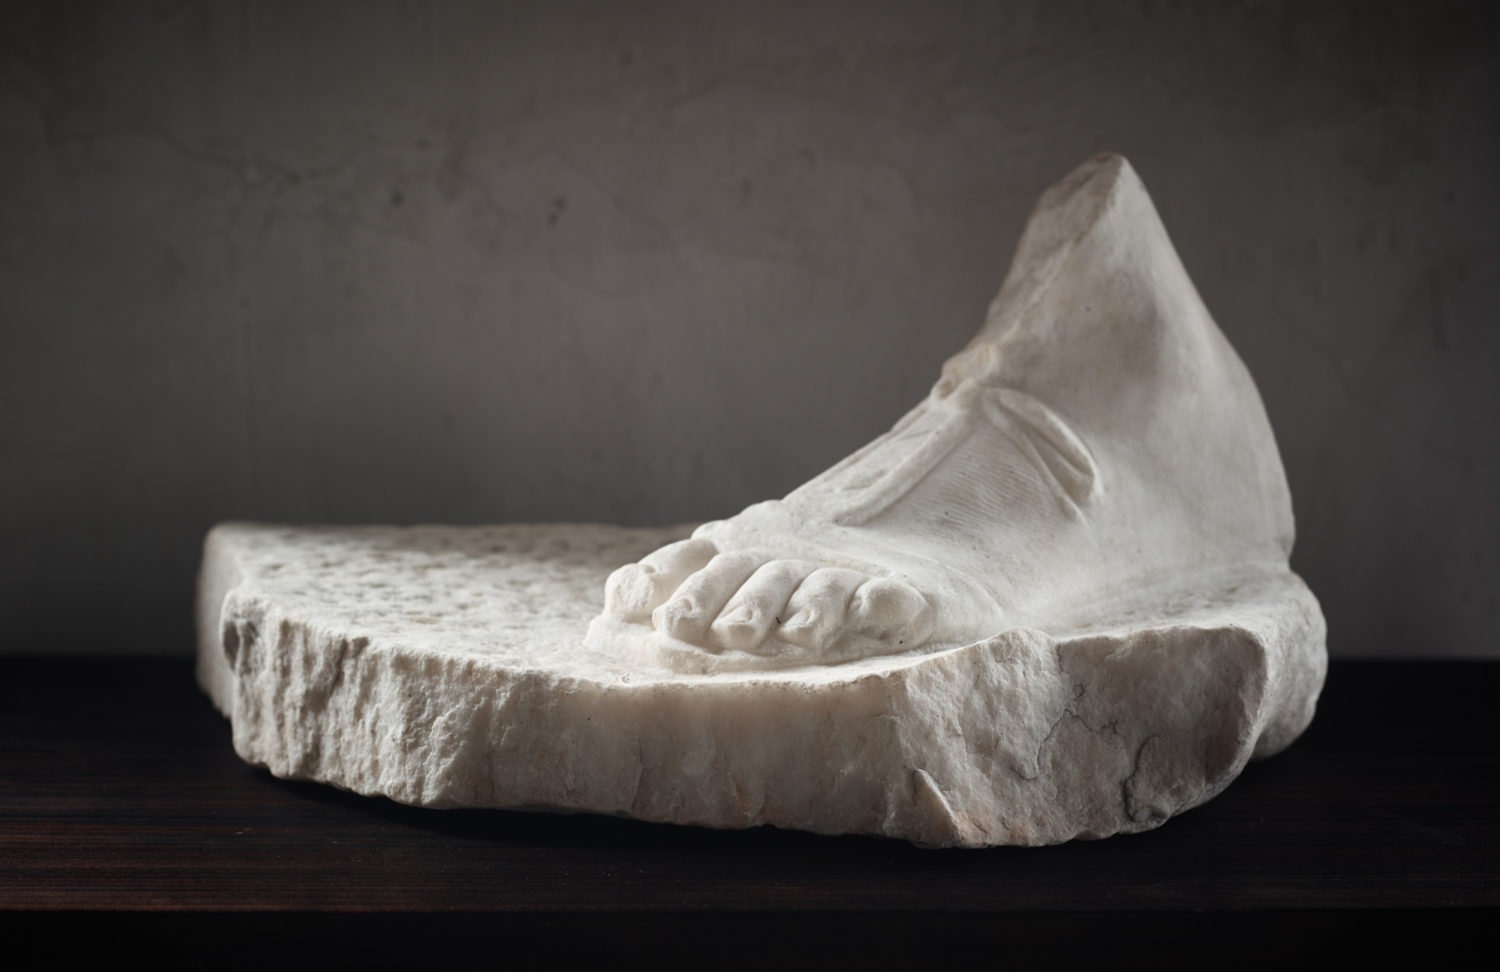 Fragment of a foot with sandal on base — Axel Vervoordt